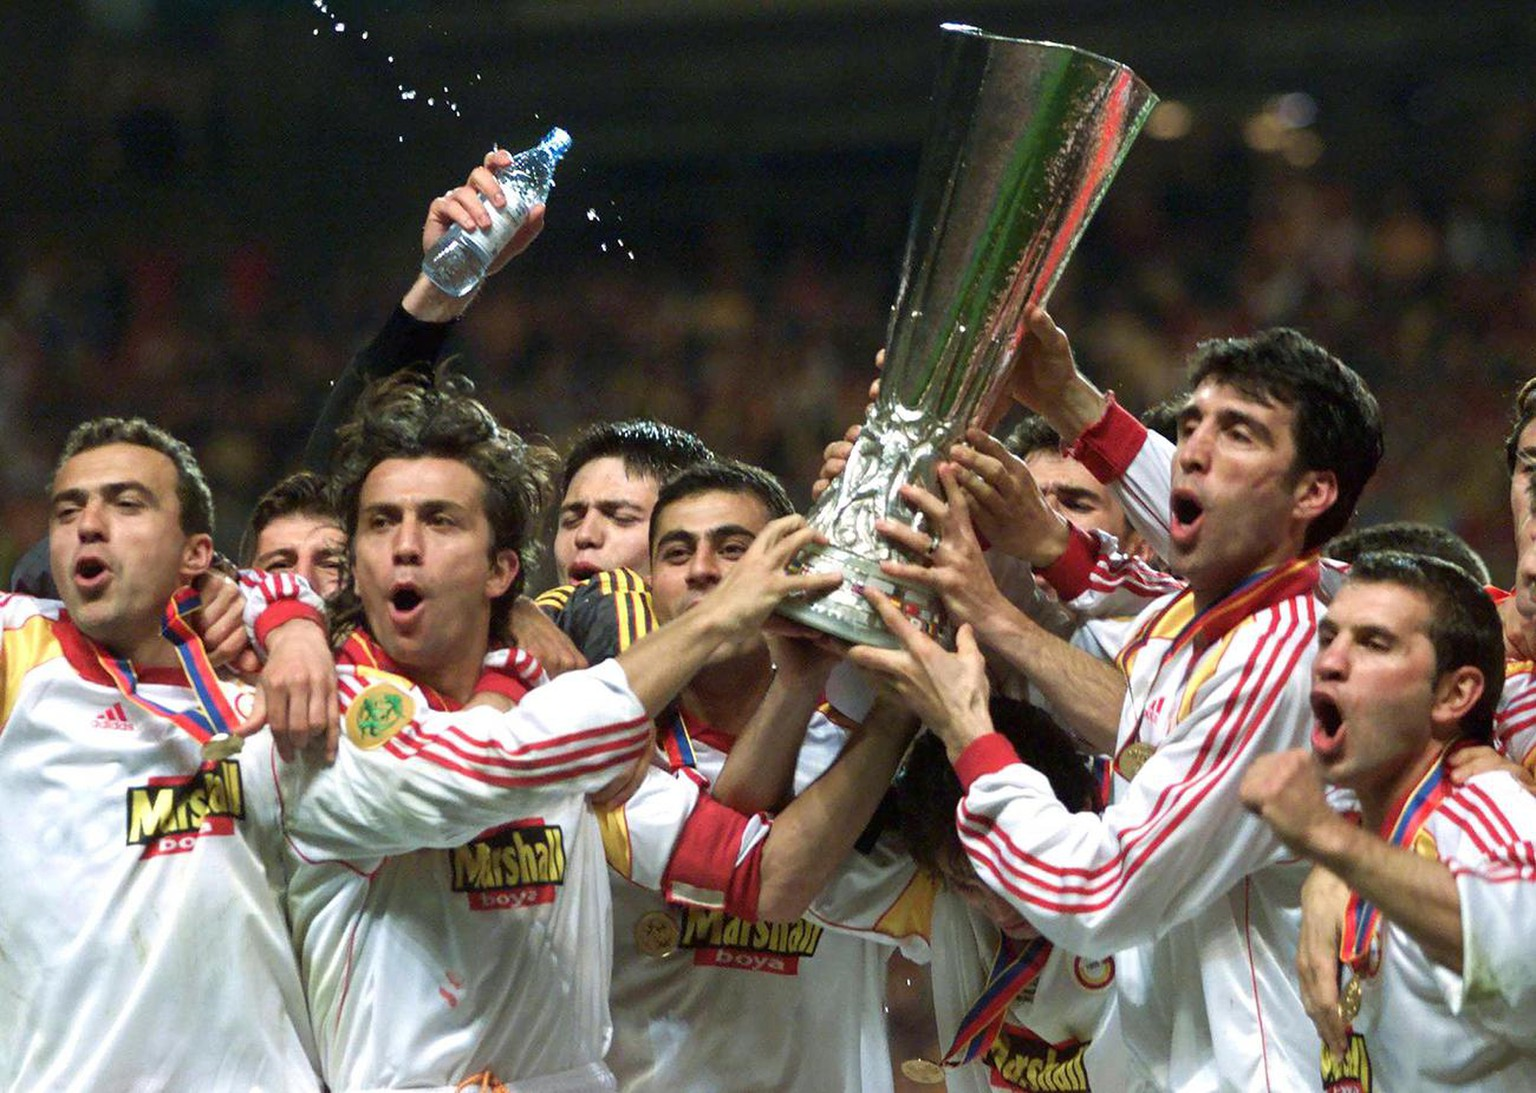 COP17-20000517-COPENHAGEN, DENMARK: The team of Galatasaray Istanbul celebrate with the UEFA Cup trophy, Wednesday, 17 May, 2000, after winning the UEFA Cup final by defeating Arsenal London in a penalty shoot out.  (ELECTRONIC IMAGE) EPA PHOTO/ANJA NIEDRINGHAUS